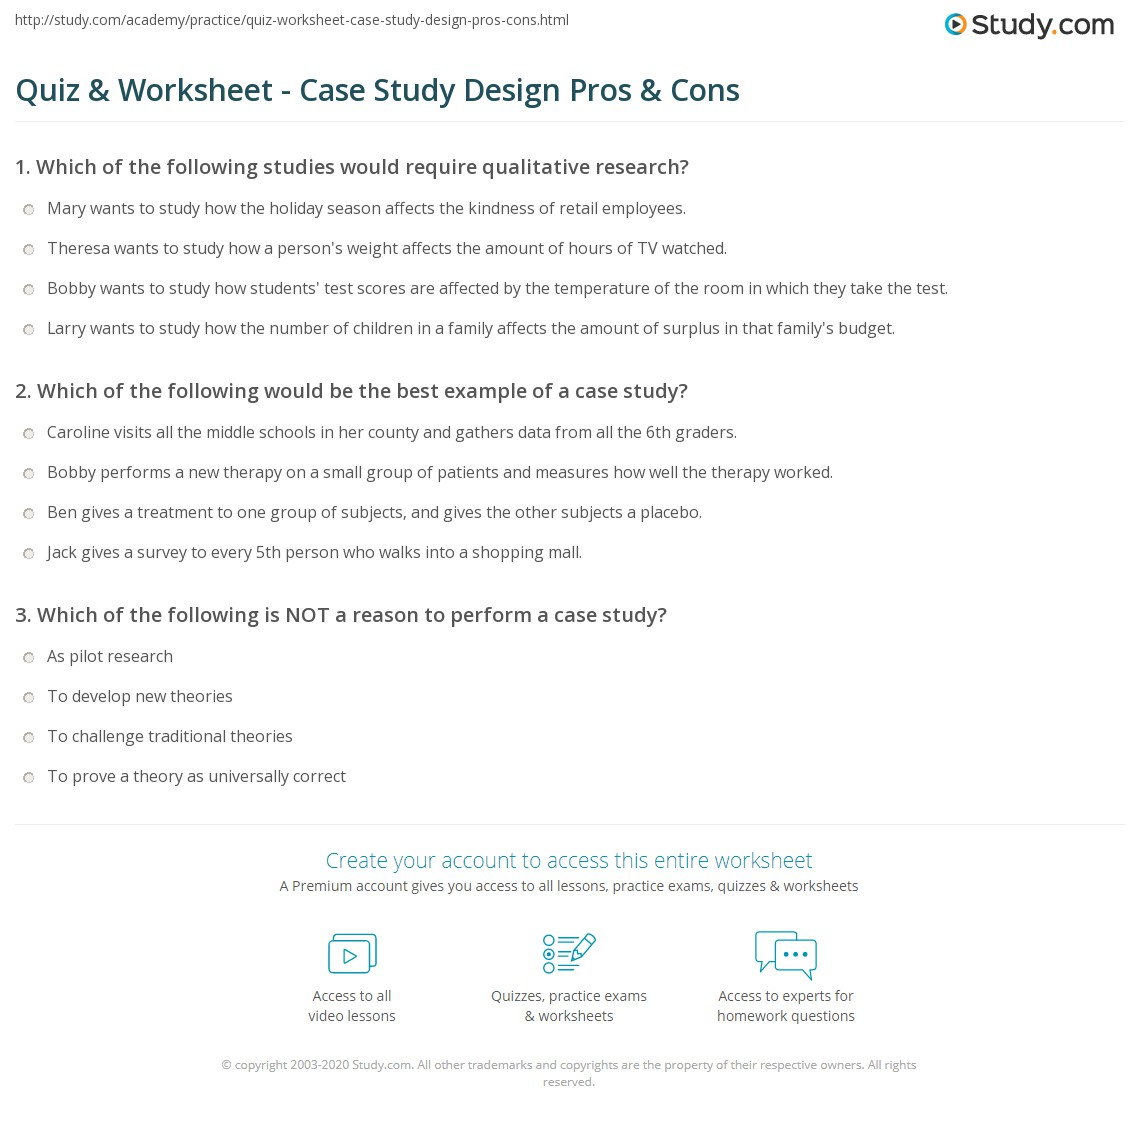 Quiz amp Worksheet Case Study Design Pros amp Cons Studycom Quiz Worksheet Case Study Design Pros Cons Quiz Worksheet Case Study Design Pros Cons